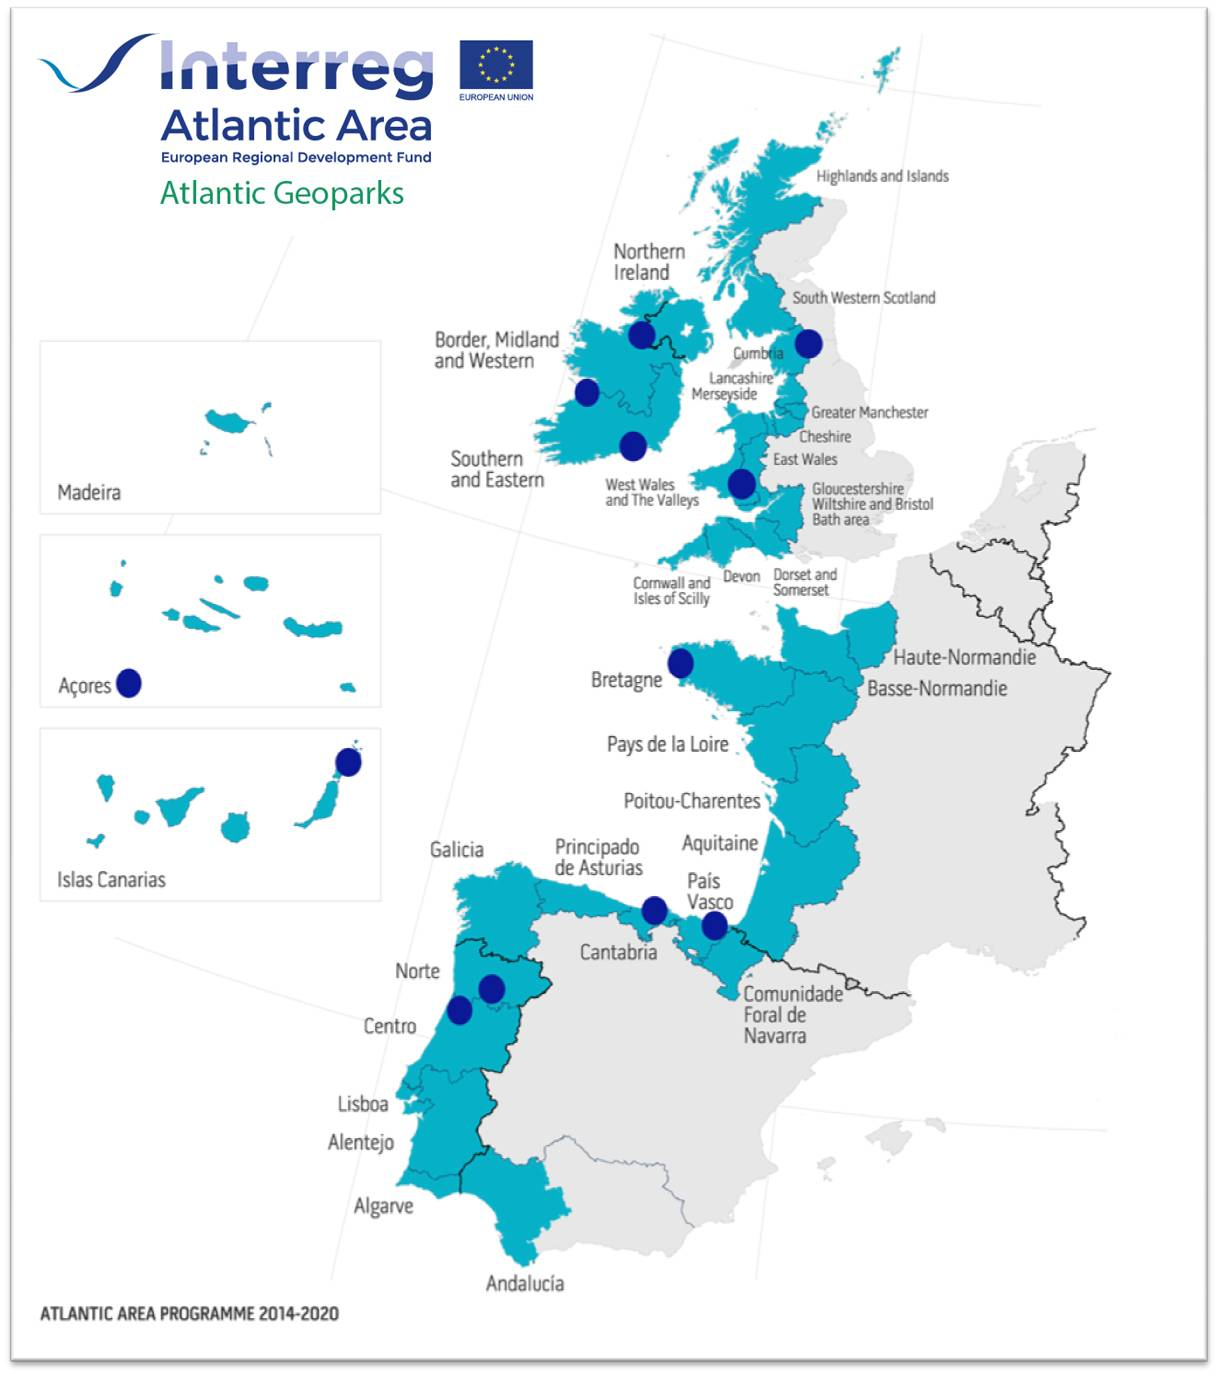 Atlantic Geoparks map